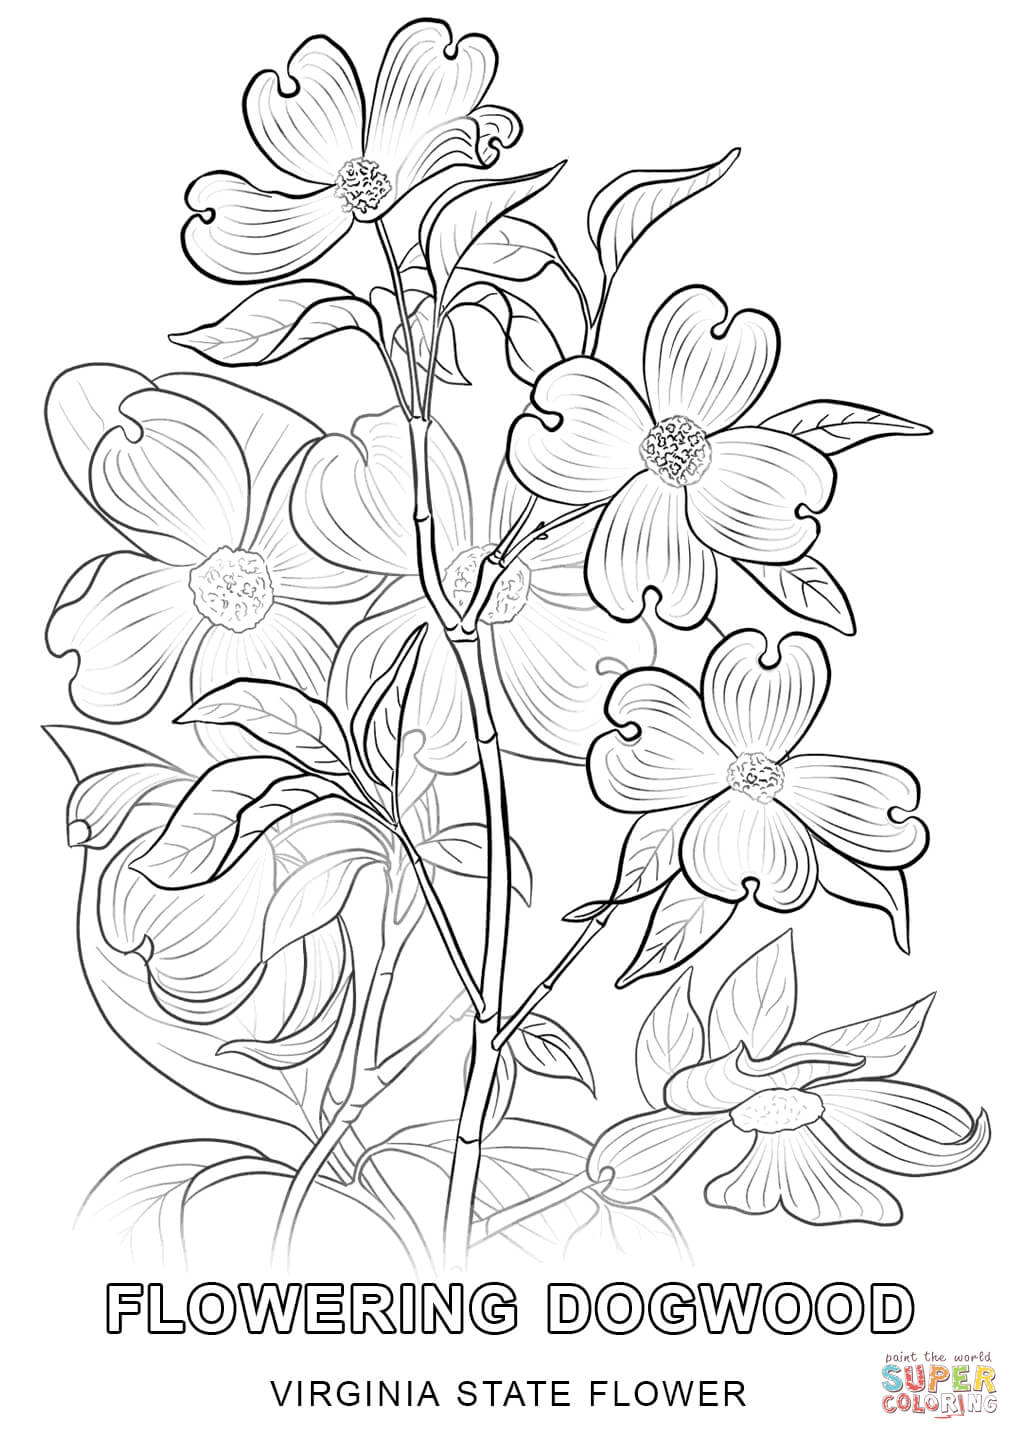 virginia state flower virginia state flower coloring page woo jr kids activities flower virginia state